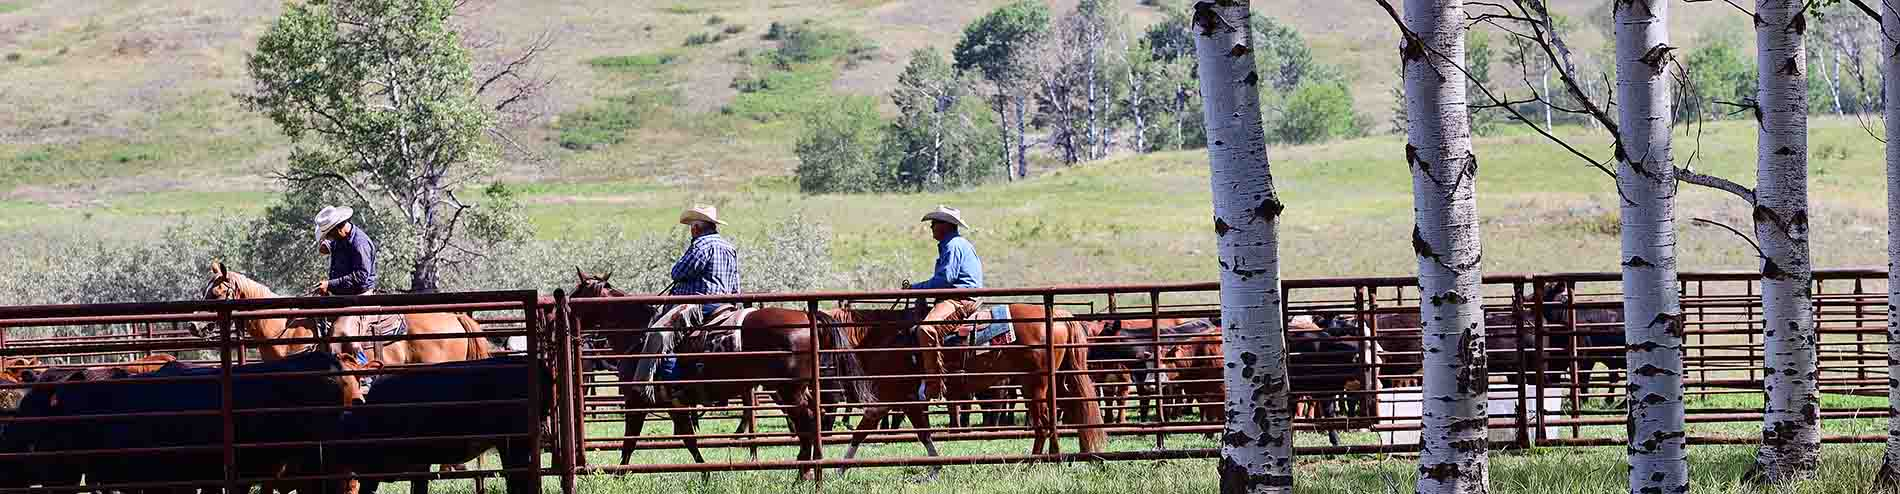 herding-cattle-bc-cutting-association